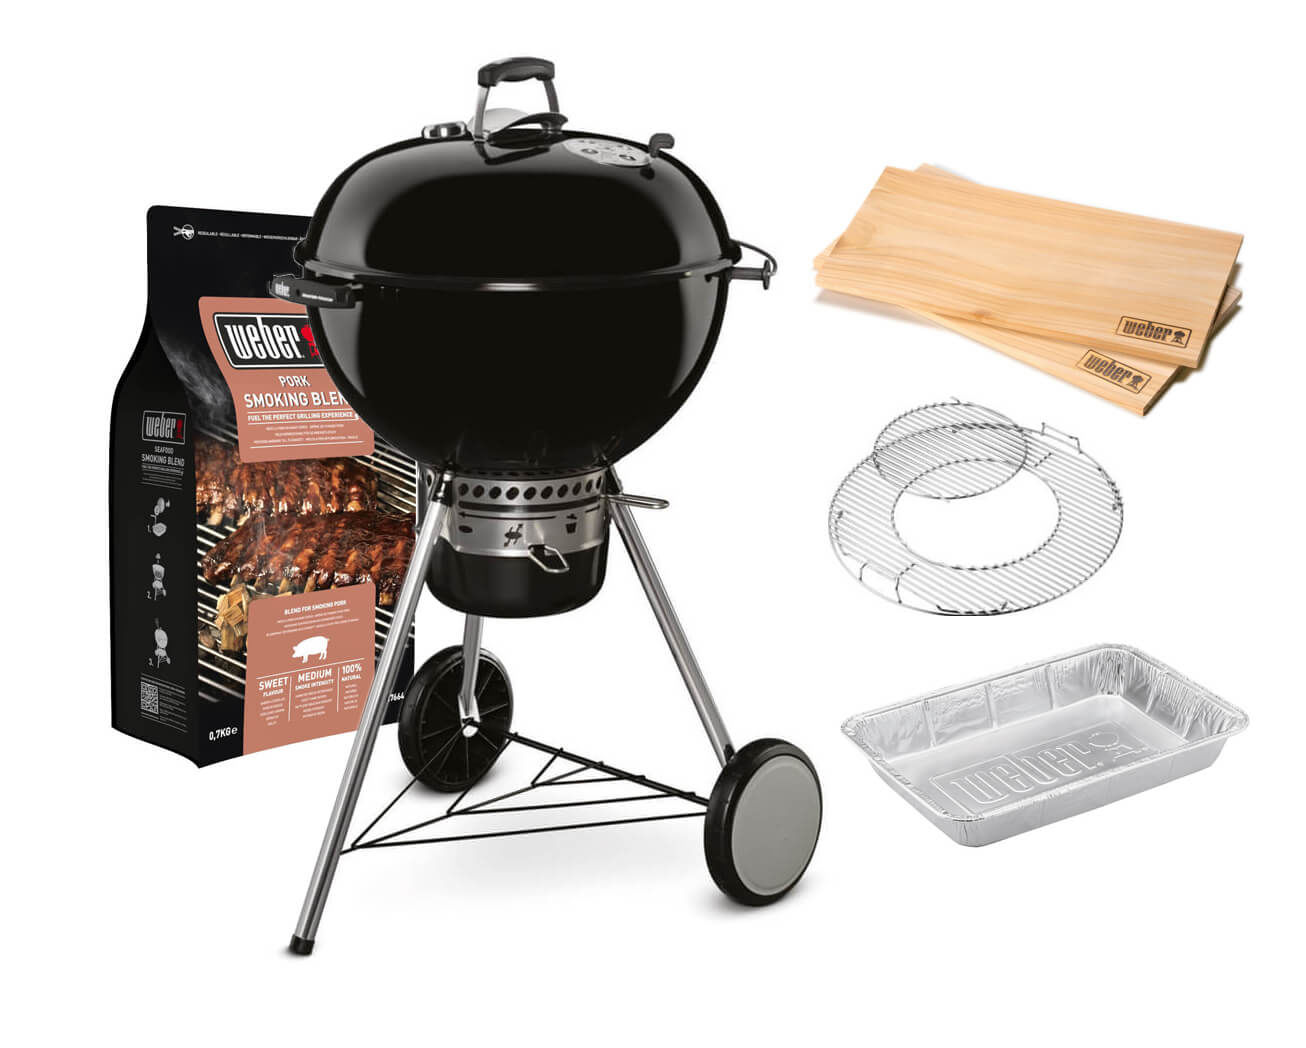 Weber Holzkohlegrill Master Touch Gbs 57 Cm : Weber master touch gbs special edition 57 cm black grill smoking set